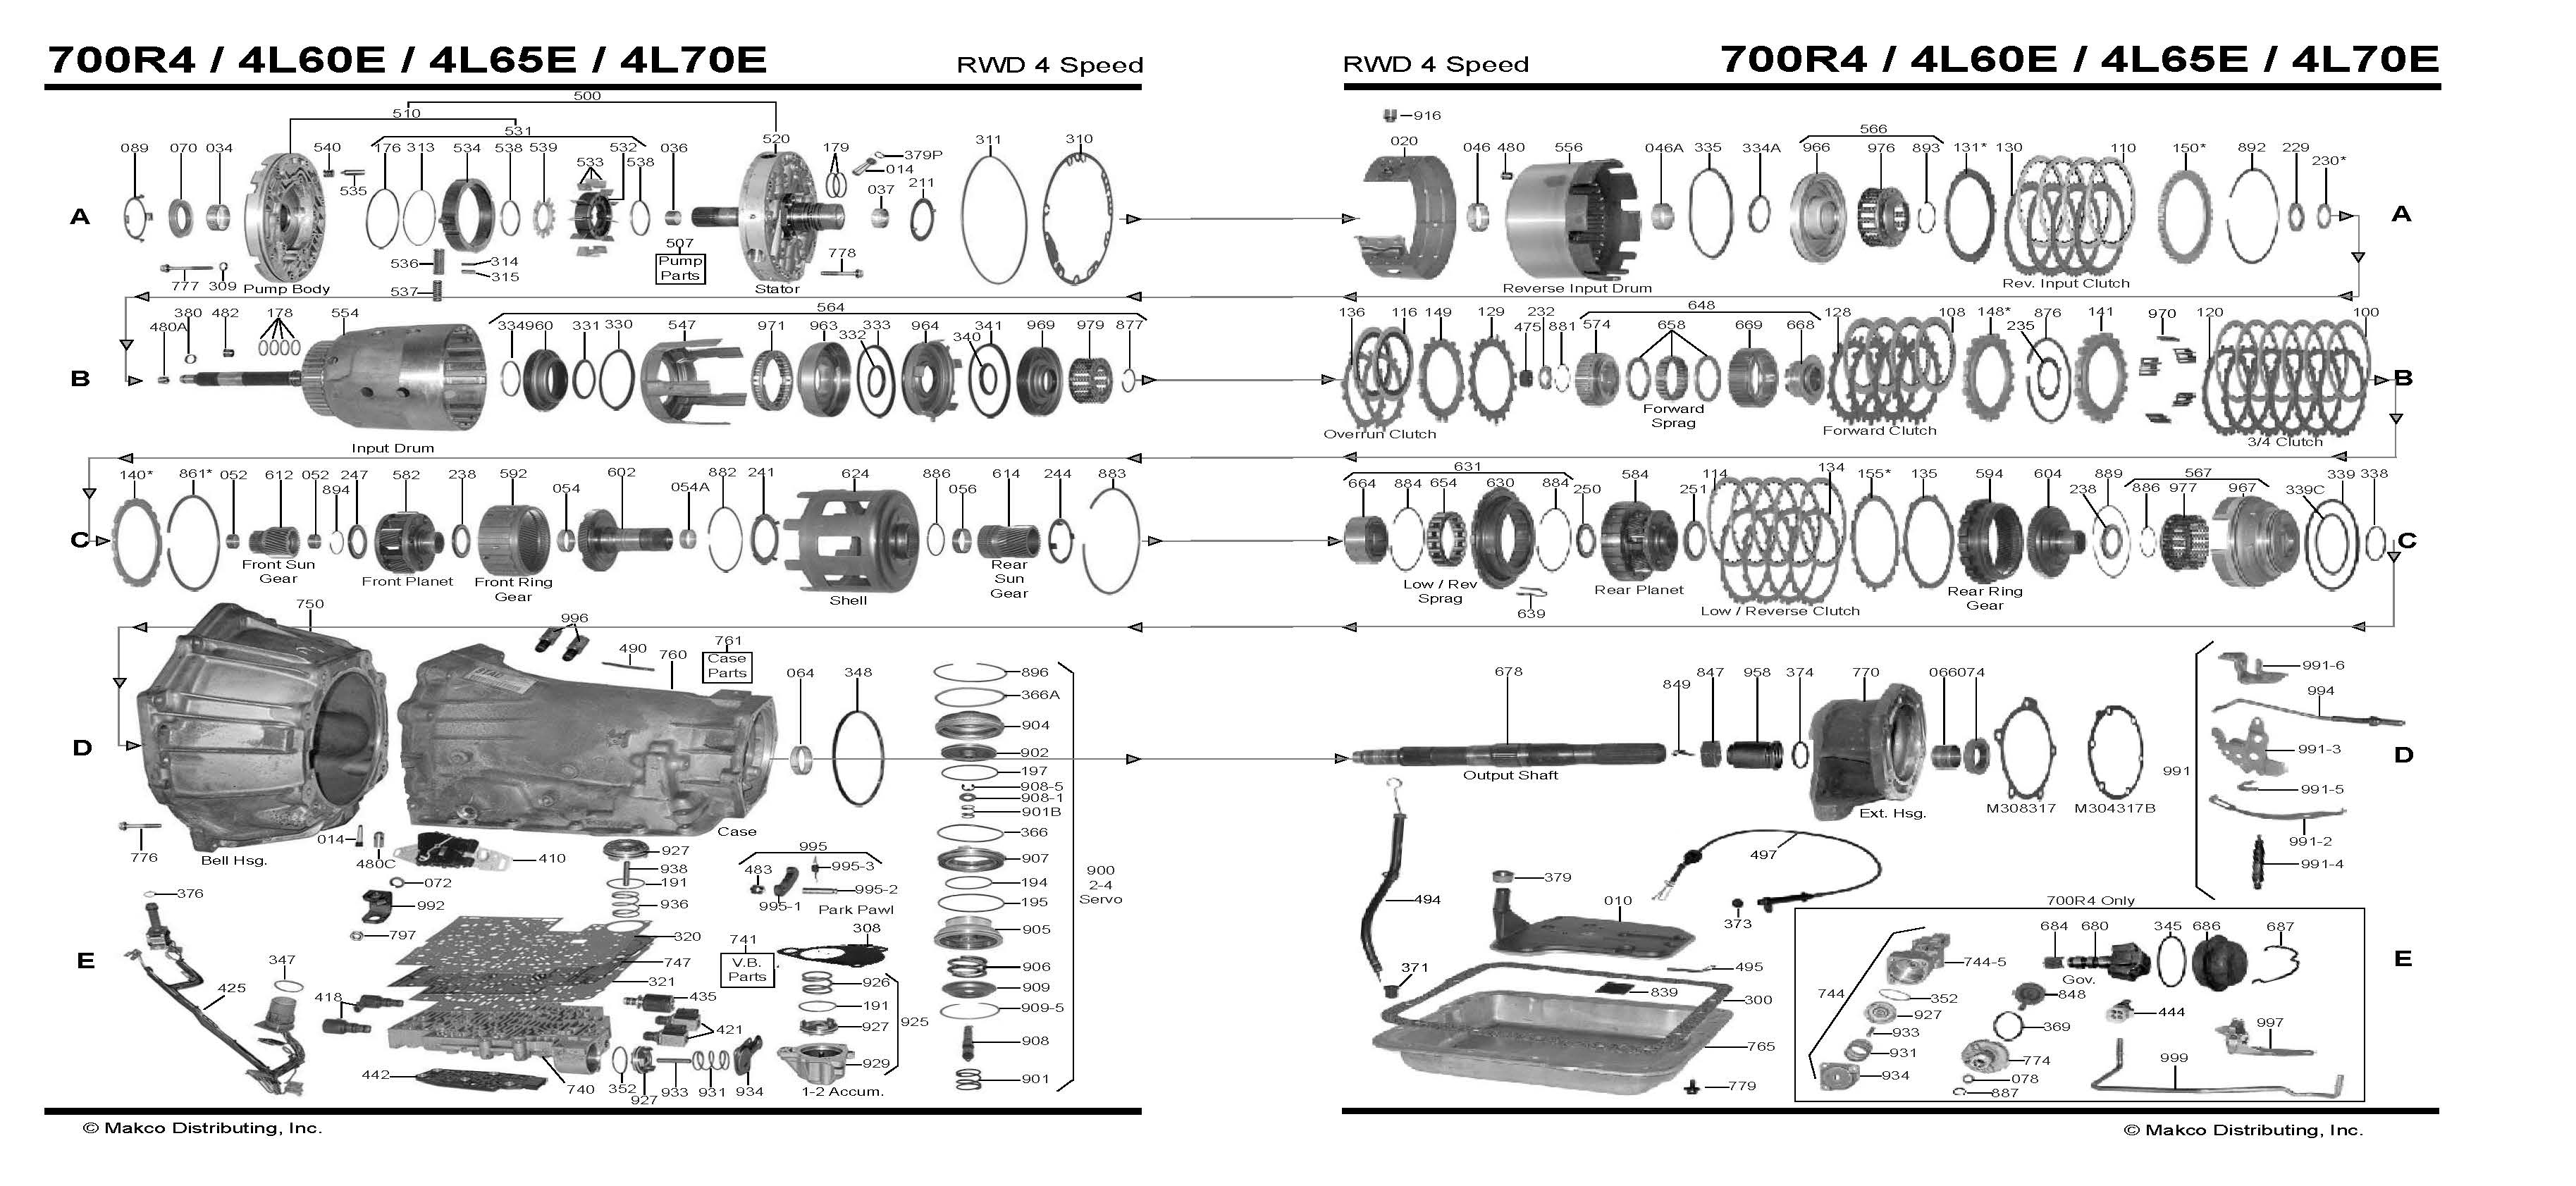 Chevy 700r Transmission Diagram Not Lossing Wiring Rh Diagramweb Net Automatic 700r4